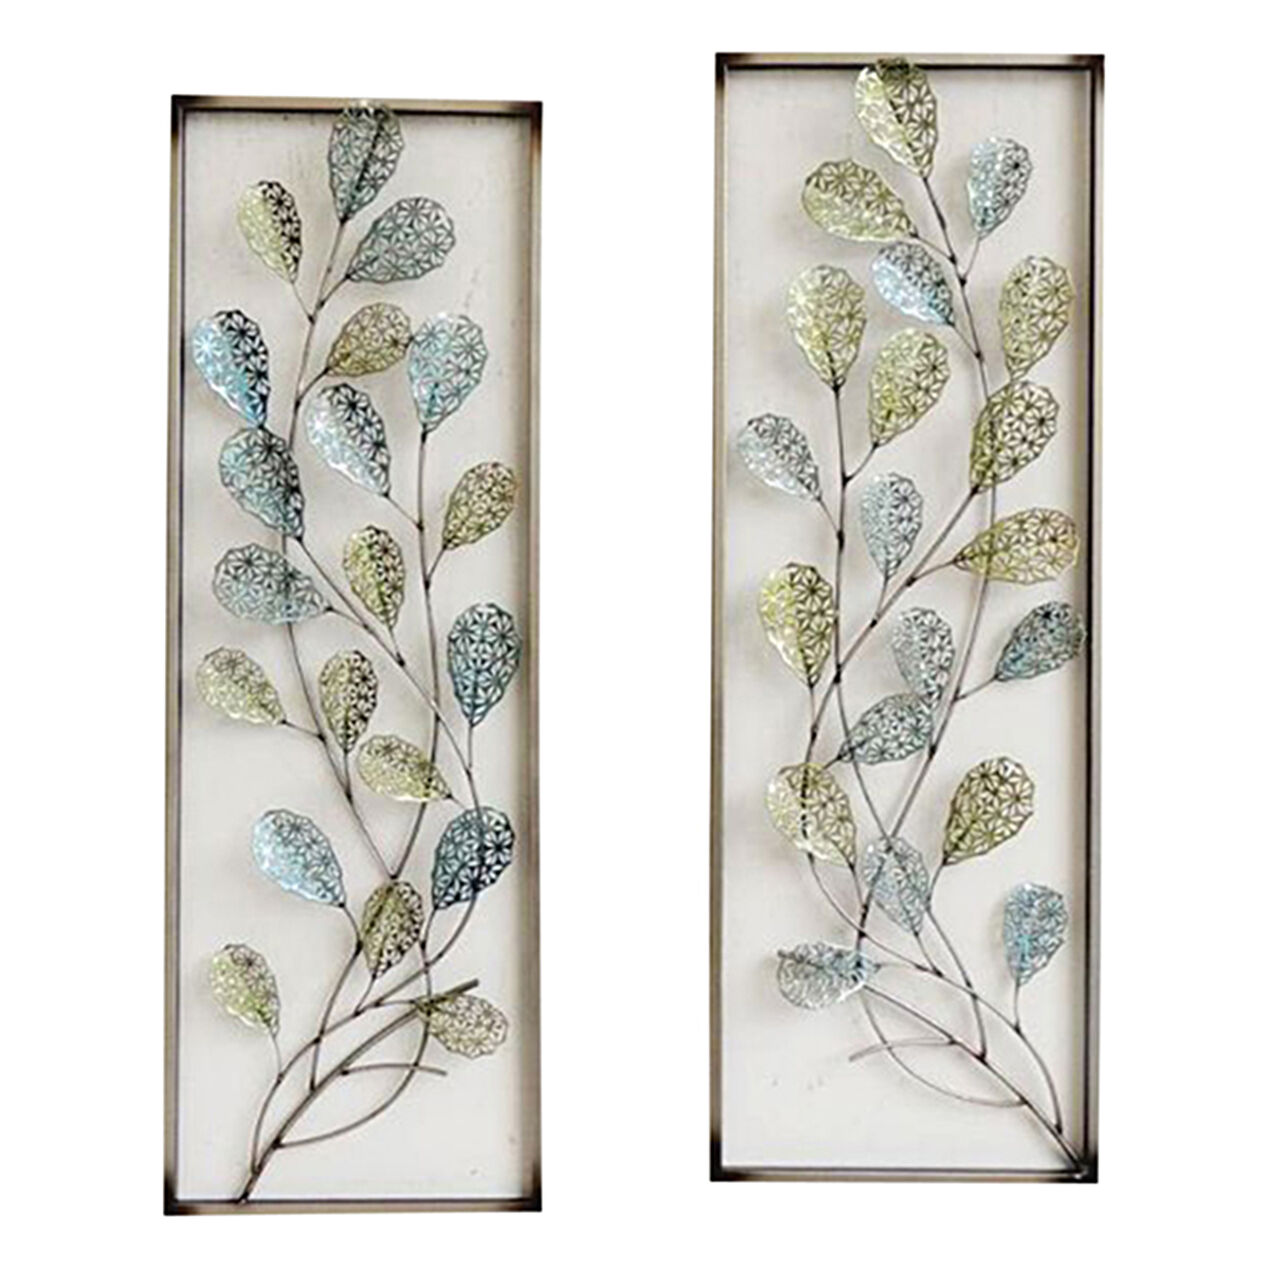 12 x 35 in framed filigree leaf wall d cor at home for Decorative wall decor